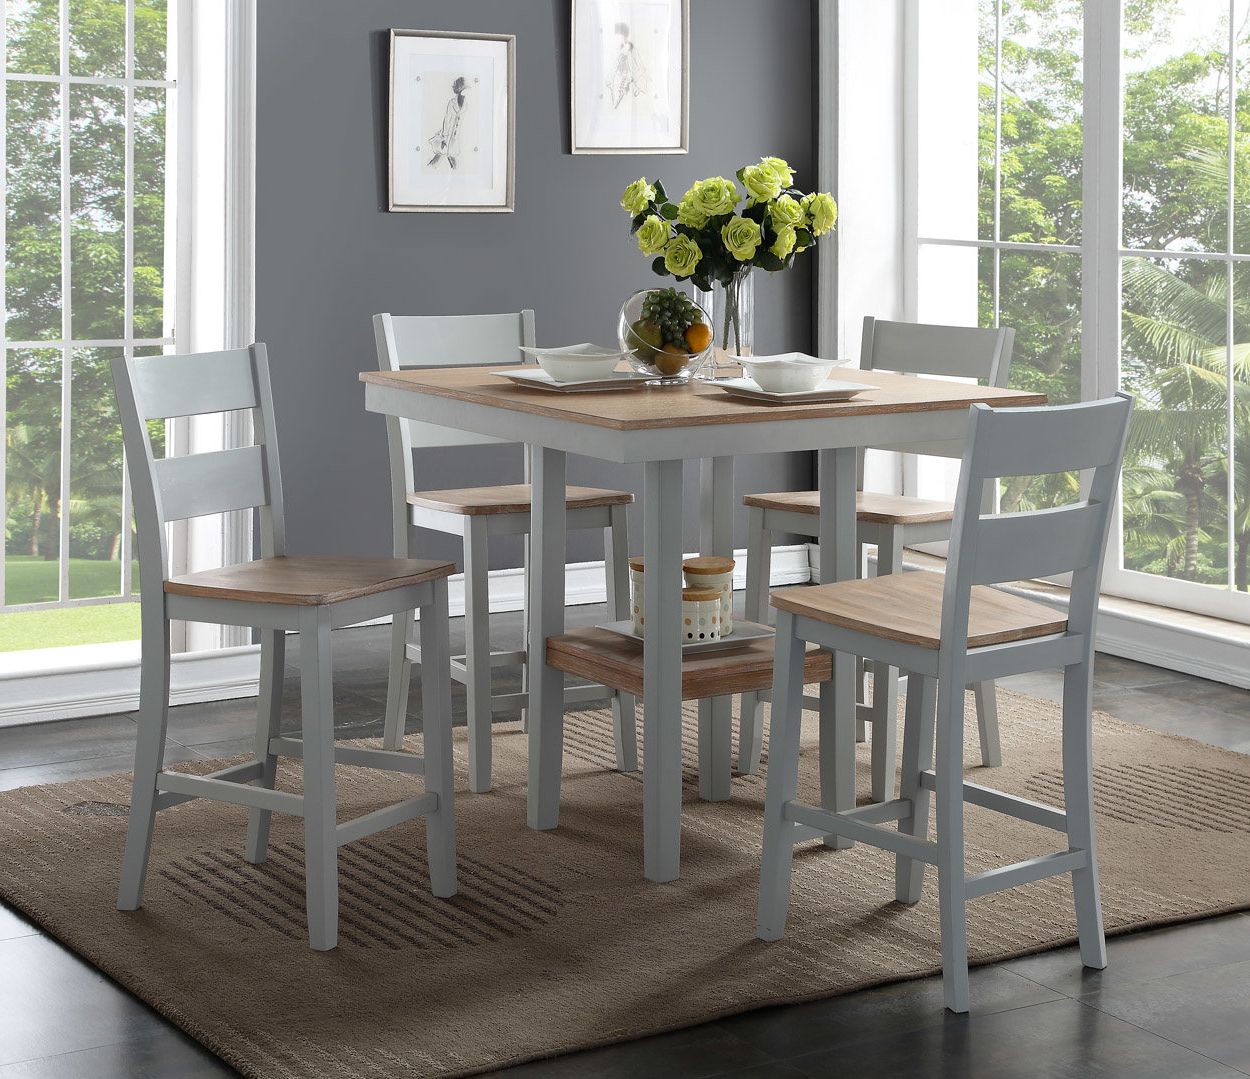 5 Piece Breakfast Nook Dining Sets Within Best And Newest August Grove Liesel Counter 5 Piece Breakfast Nook Solid Wood Dining (View 5 of 25)